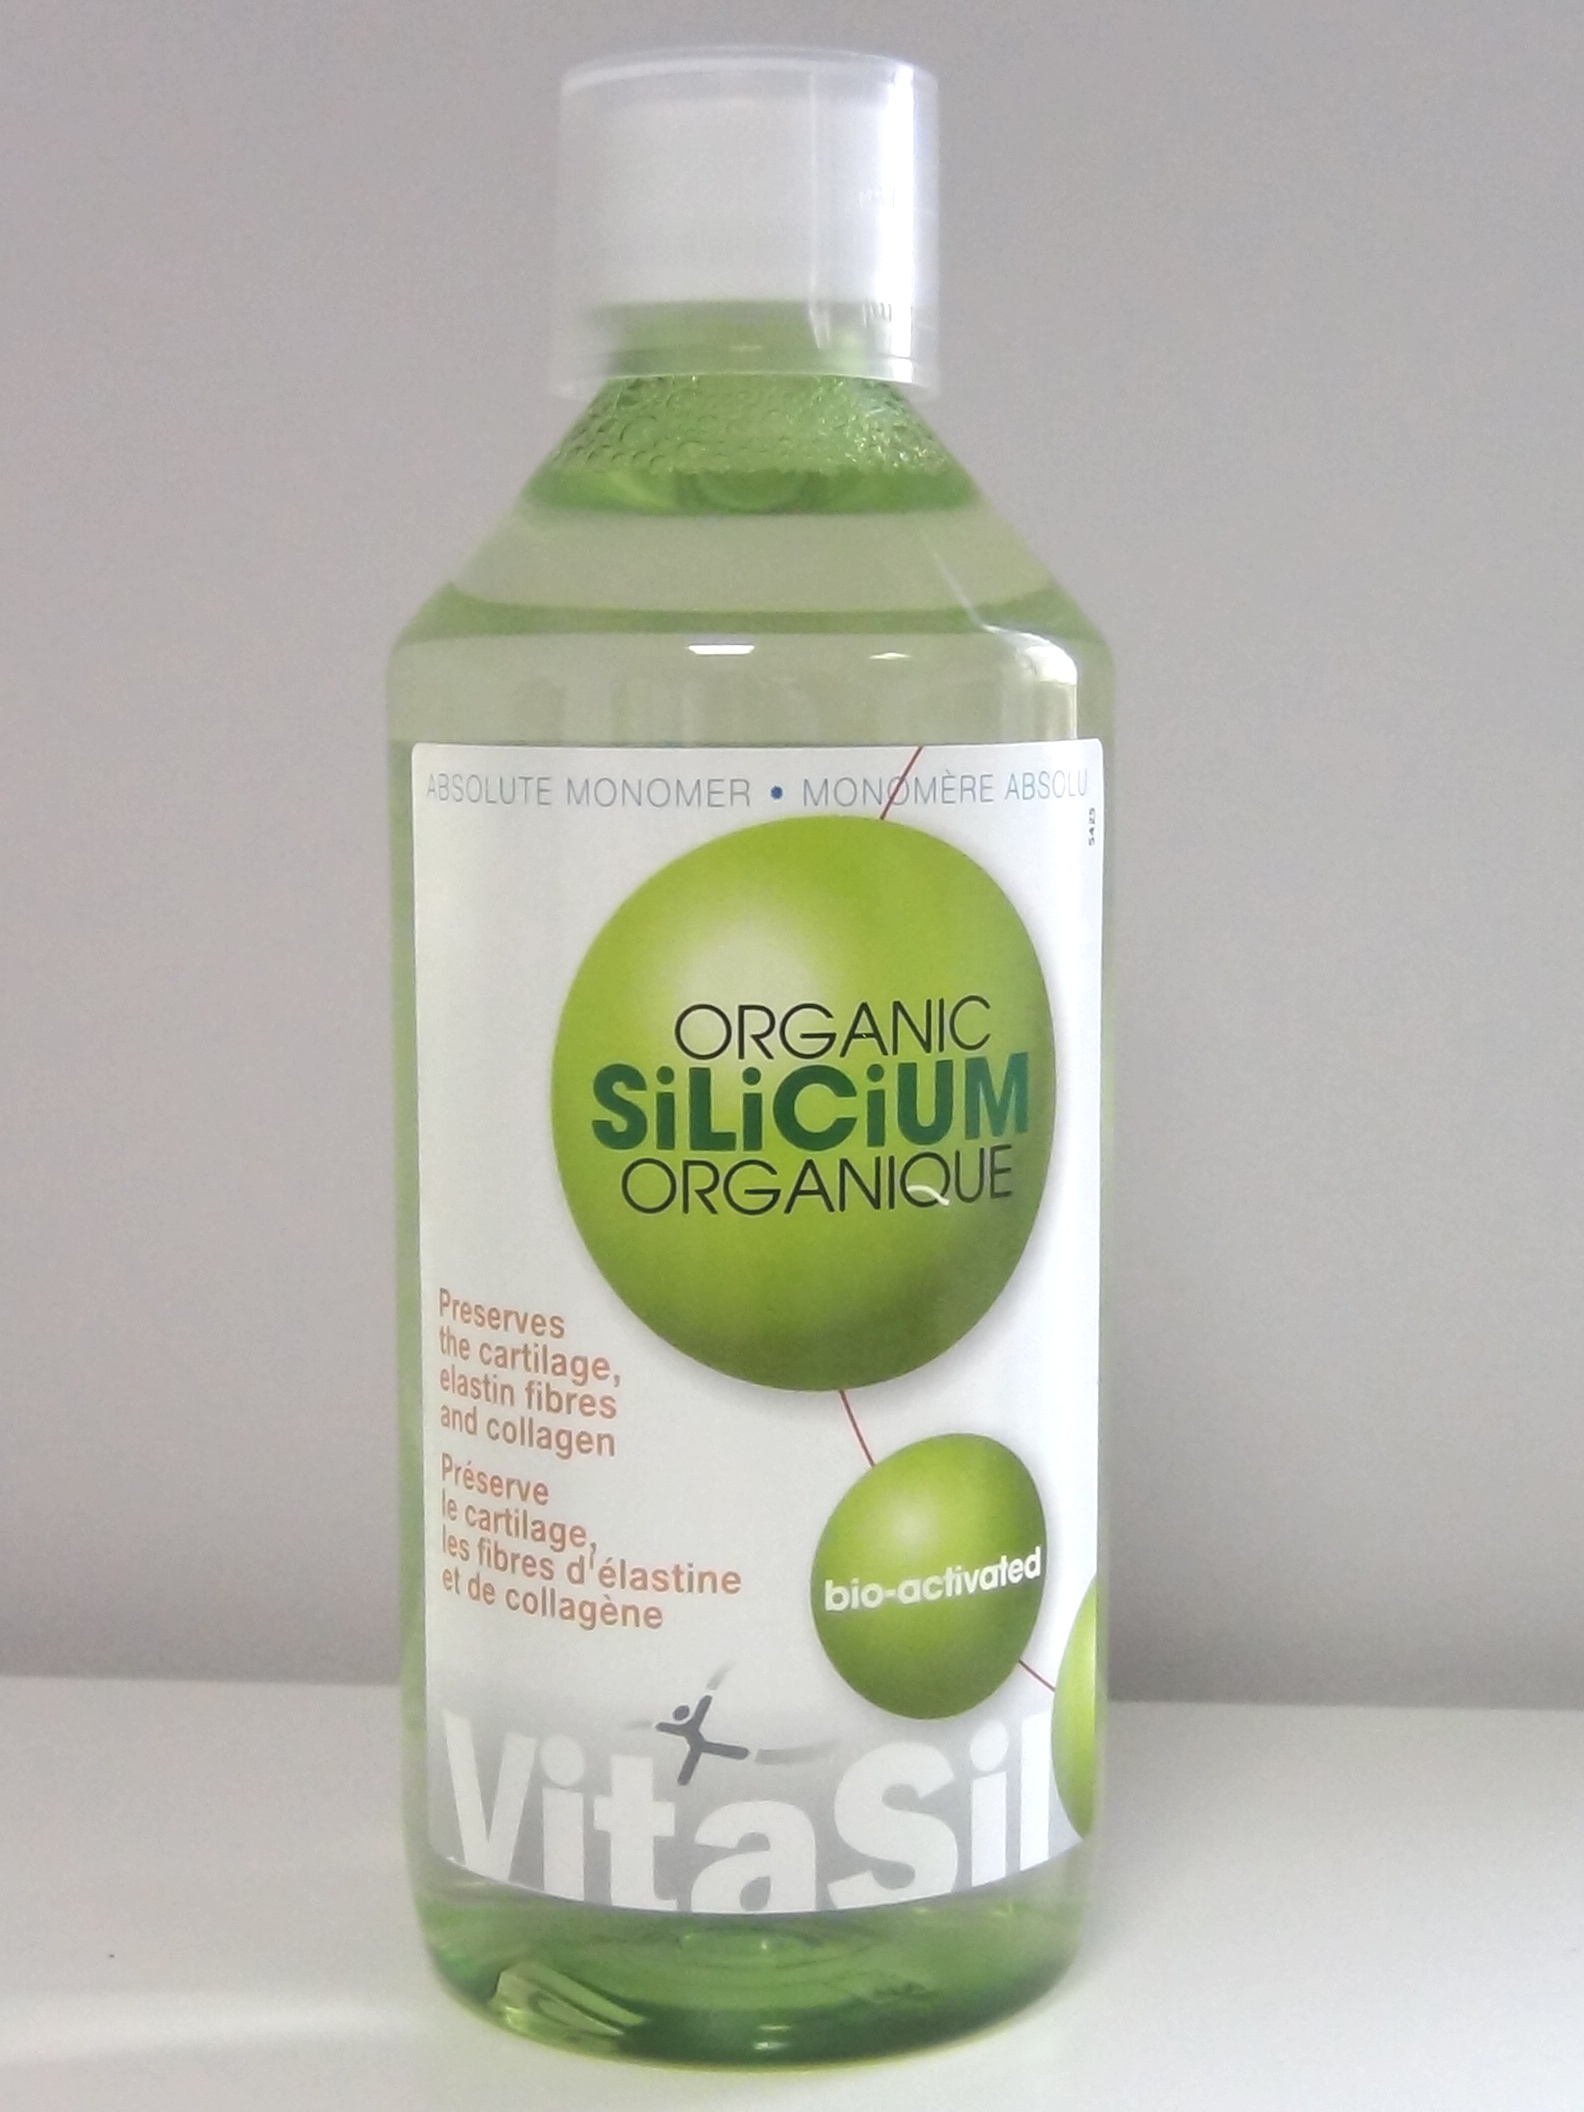 Silicium It Reduces And Prevents Lines And Wrinkles